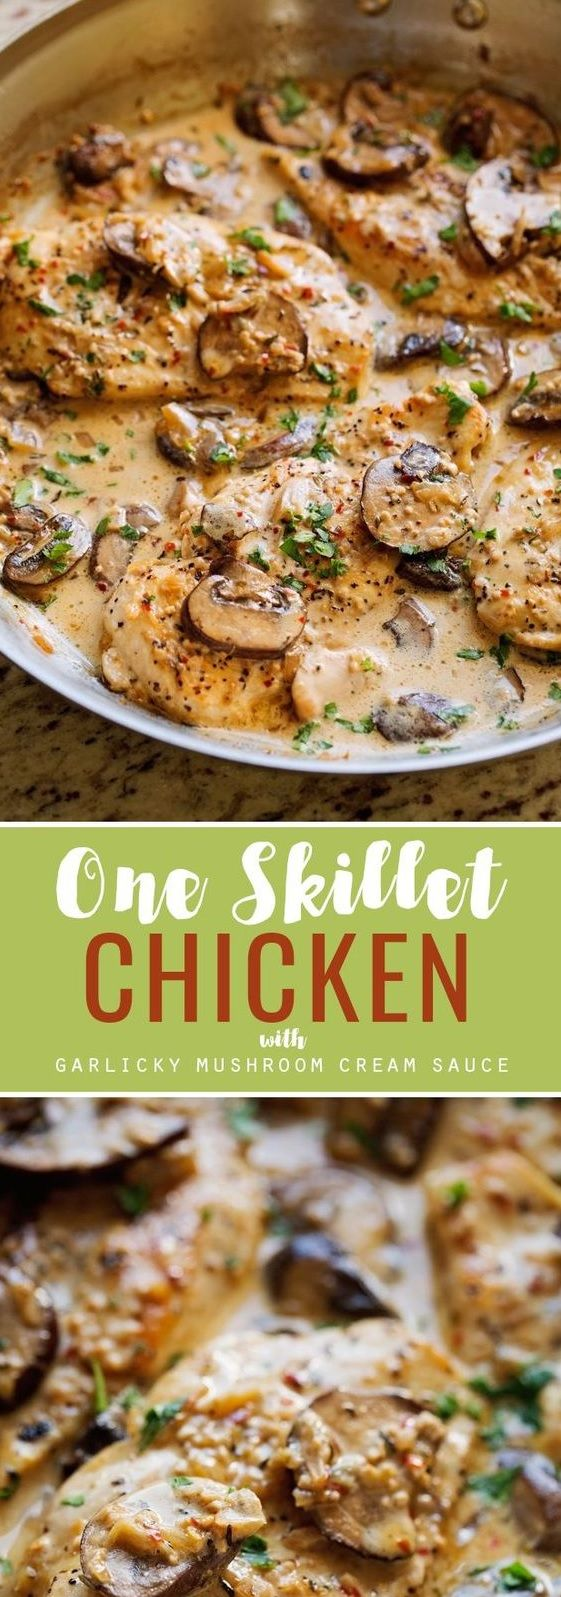 ONE SKILLET CHICKEN WITH GARLICKY MUSHROOM CREAM SAUCE | Good Recipes